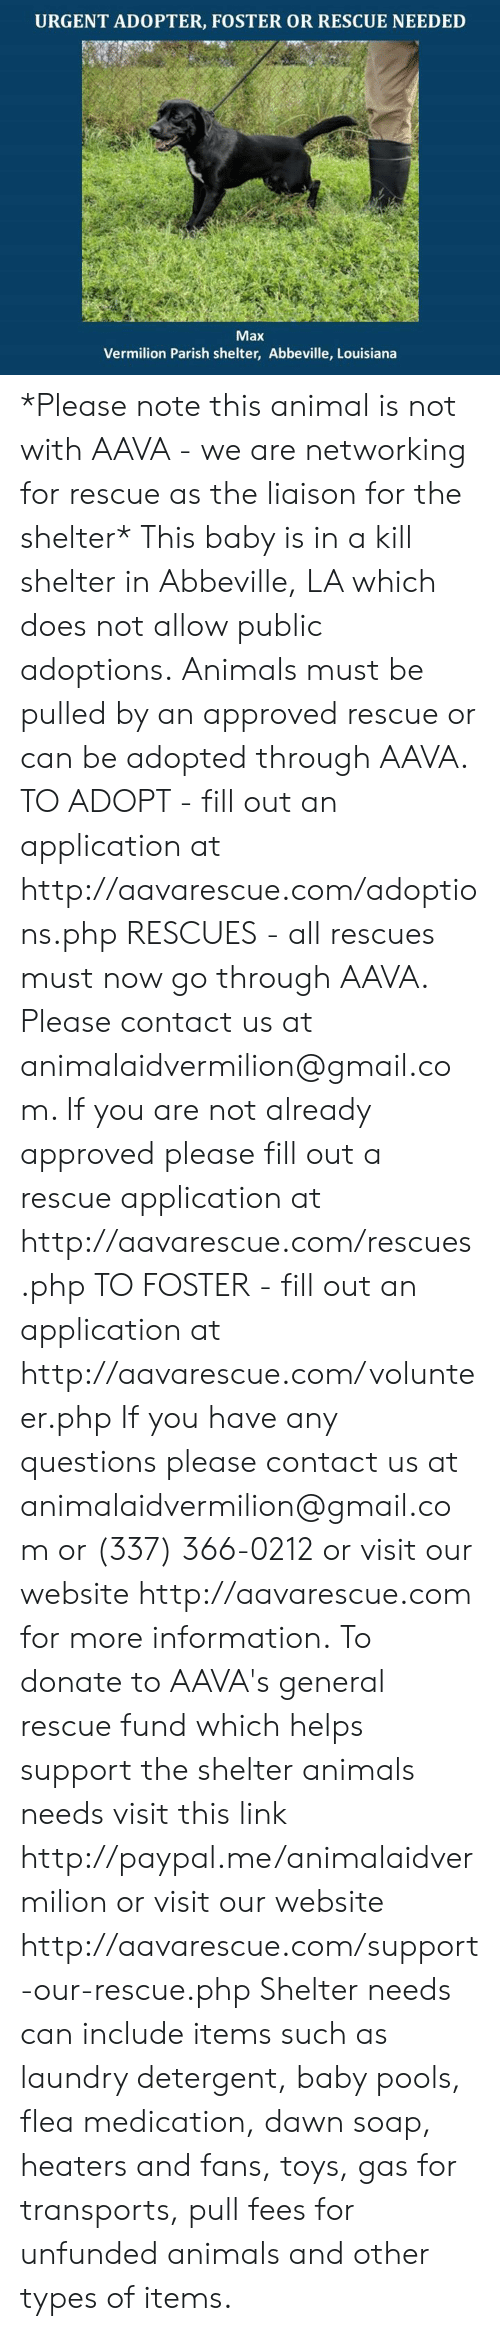 Fill Out: URGENT ADOPTER, FOSTER OR RESCUE NEEDED  Max  Vermilion Parish shelter, Abbeville, Louisiana *Please note this animal is not with AAVA - we are networking for rescue as the liaison for the shelter* This baby is in a kill shelter in Abbeville, LA which does not allow public adoptions. Animals must be pulled by an approved rescue or can be adopted through AAVA.  TO ADOPT - fill out an application at http://aavarescue.com/adoptions.php  RESCUES - all rescues must now go through AAVA. Please contact us at animalaidvermilion@gmail.com. If you are not already approved please fill out a rescue application at http://aavarescue.com/rescues.php  TO FOSTER - fill out an application at http://aavarescue.com/volunteer.php  If you have any questions please contact us at animalaidvermilion@gmail.com or (337) 366-0212 or visit our website http://aavarescue.com for more information.  To donate to AAVA's general rescue fund which helps support the shelter animals needs visit this link http://paypal.me/animalaidvermilion or visit our website http://aavarescue.com/support-our-rescue.php Shelter needs can include items such as laundry detergent, baby pools, flea medication, dawn soap, heaters and fans, toys, gas for transports, pull fees for unfunded animals and other types of items.